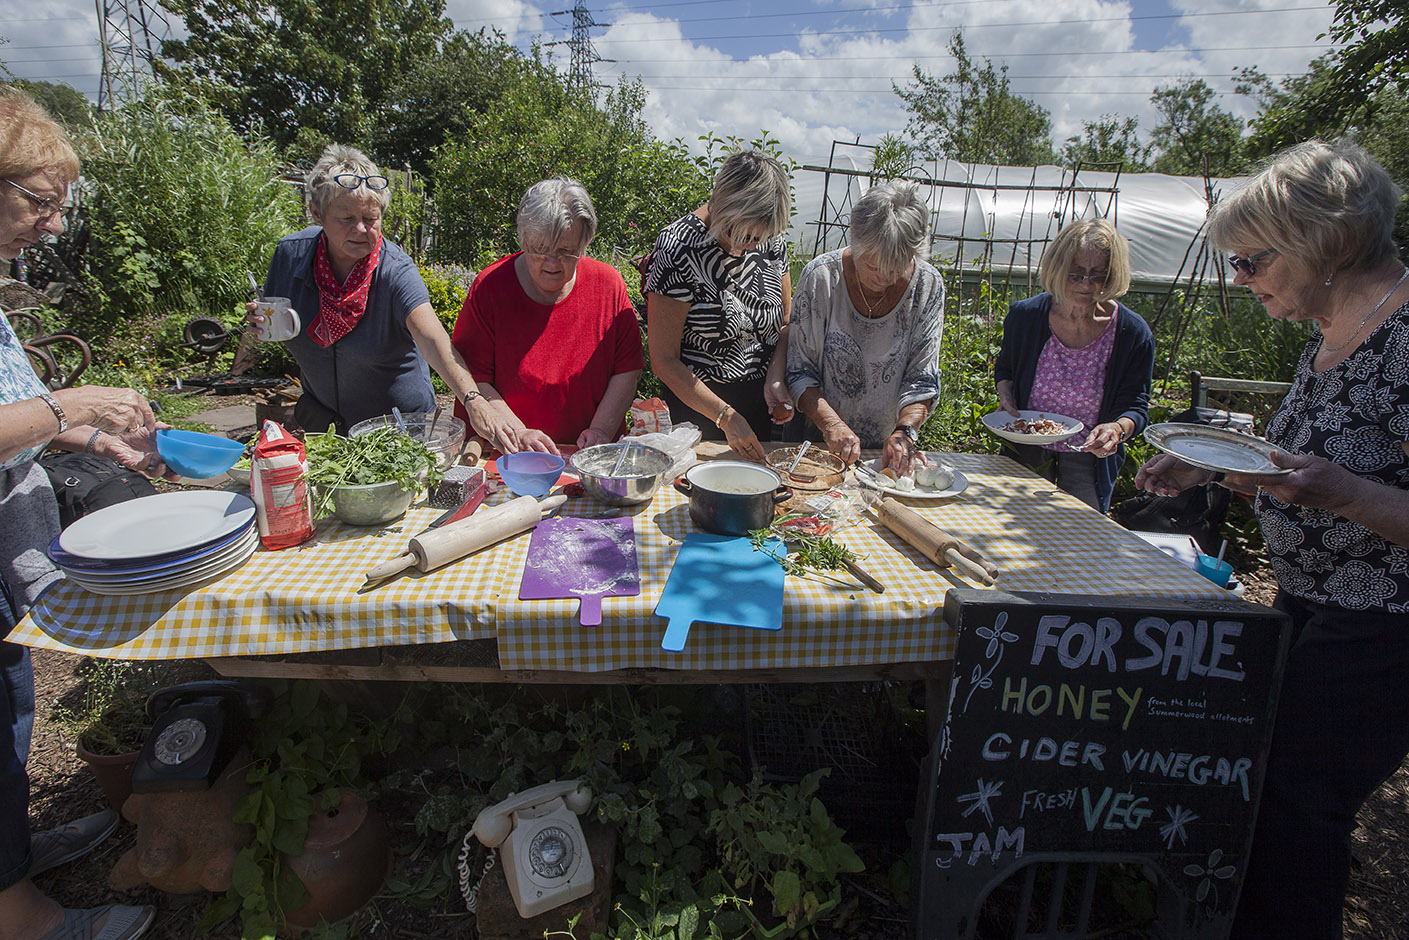 People collectively making food at a large table in an allotment garden